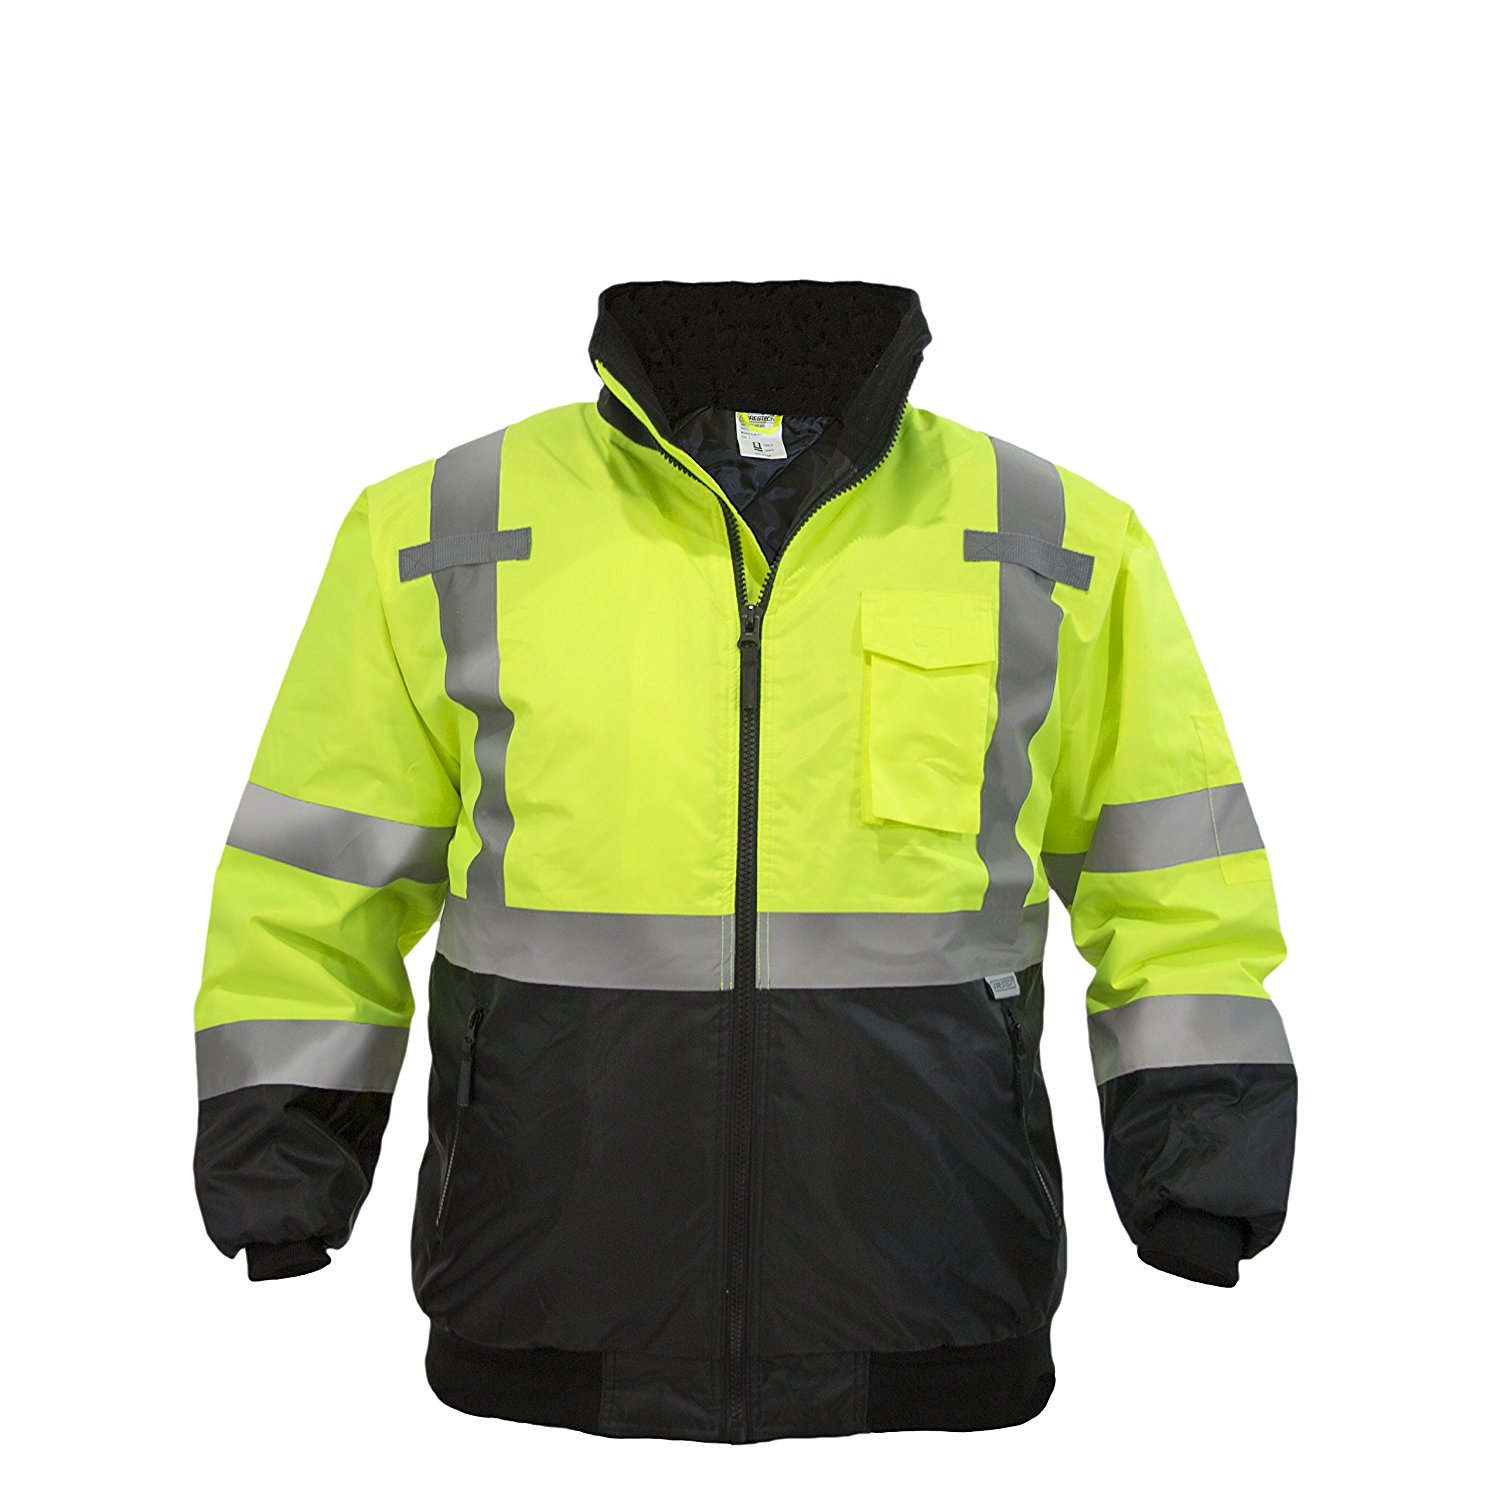 JORESTECH High Visibility Waterproof Bomber Jacket (Medium, Yellow) - - Amazon.com